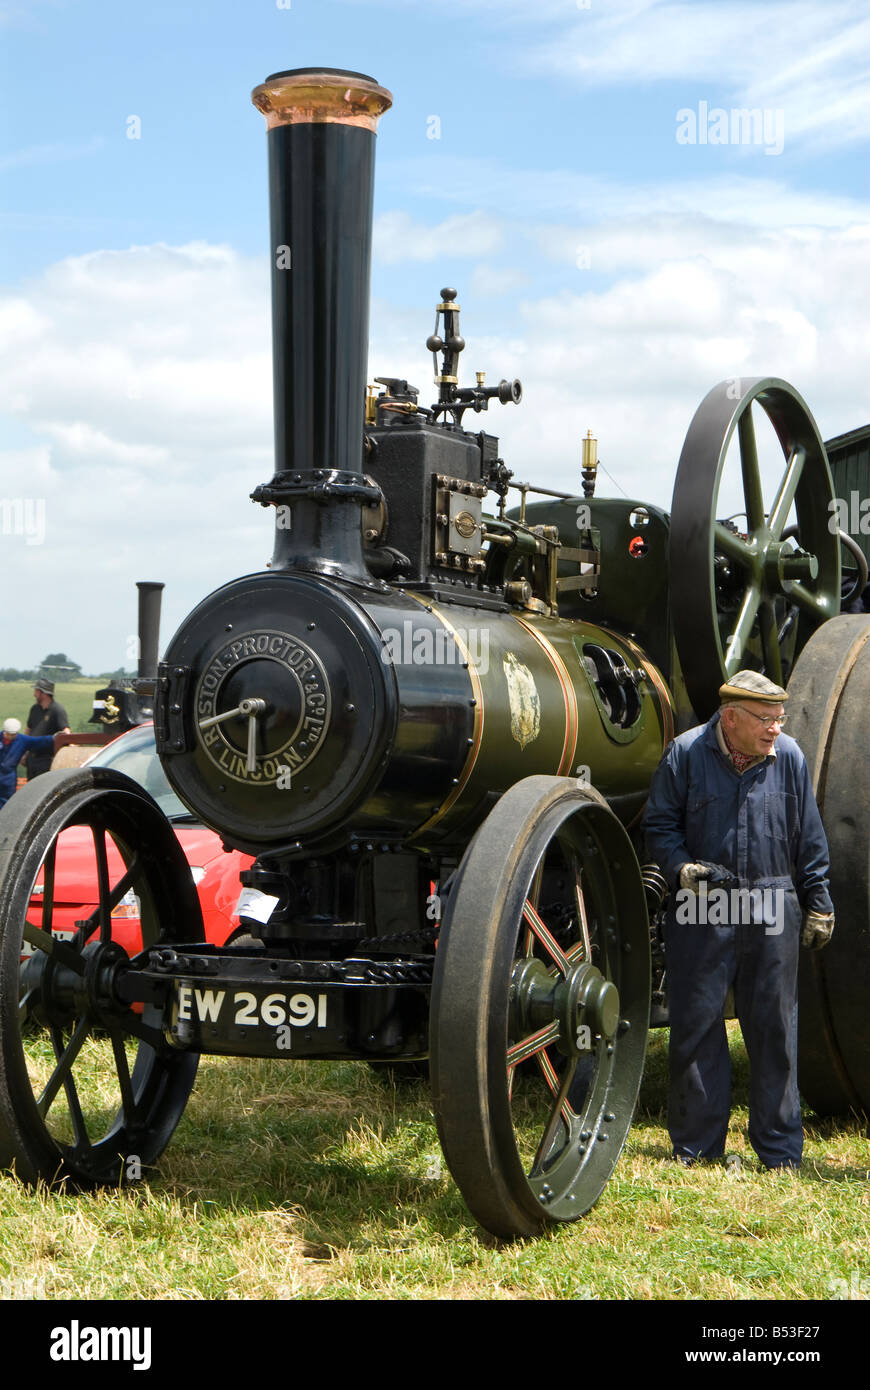 A man and his Ruston Proctor steam powered traction engine at Bloxham Vintage Vehicle and Country Show. UK. - Stock Image